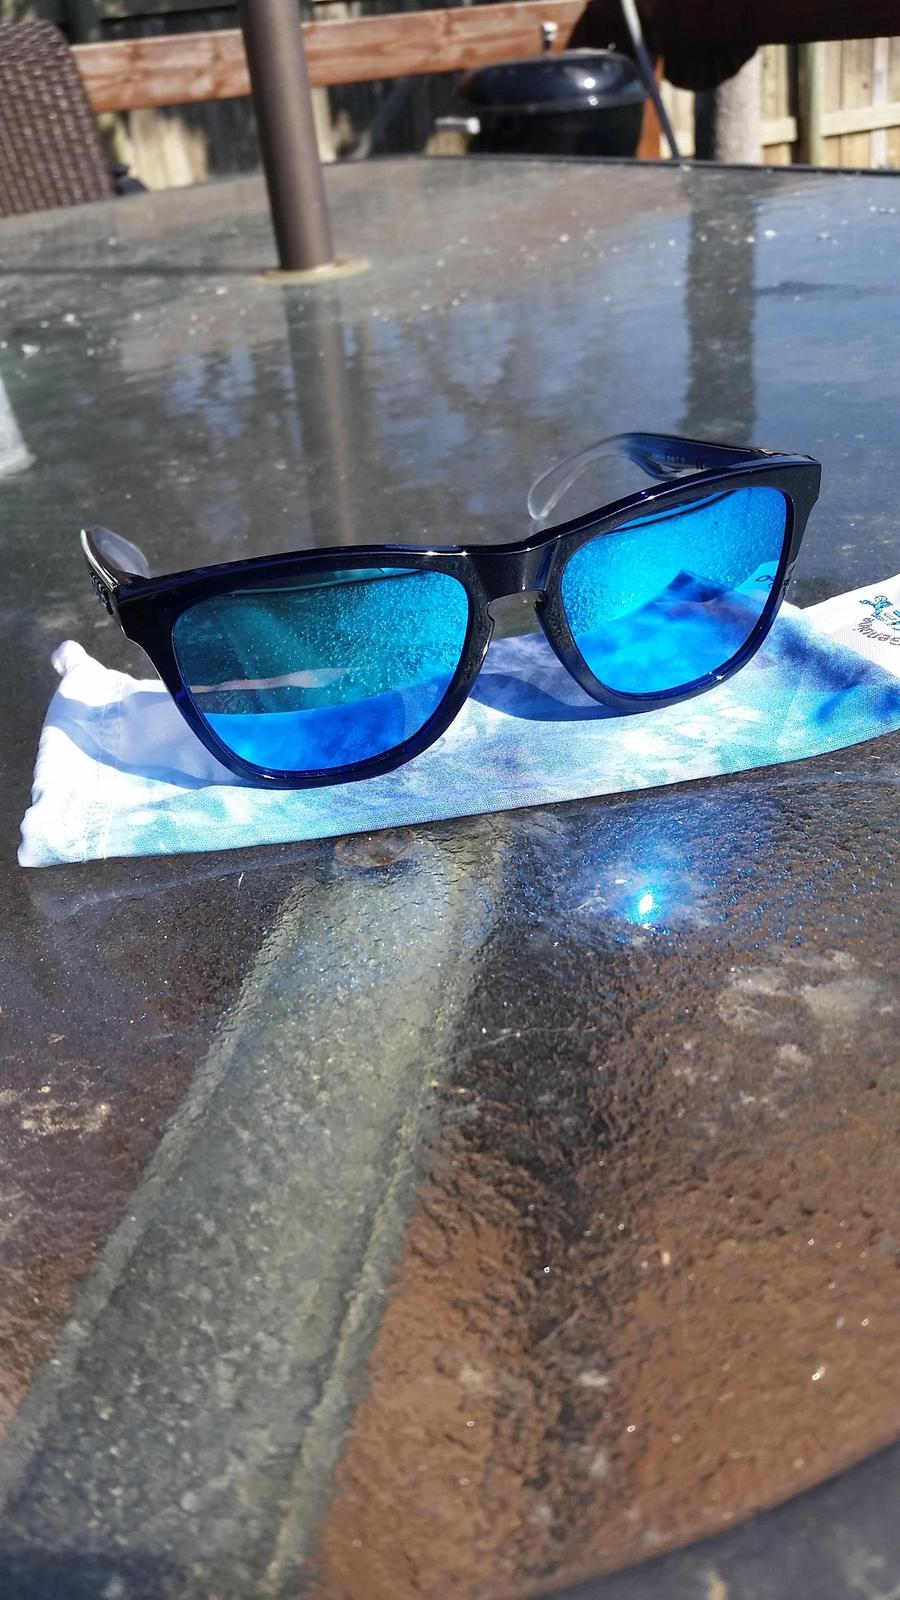 My new/first pair of frogskins just came in today! - YJG1ygB.jpg